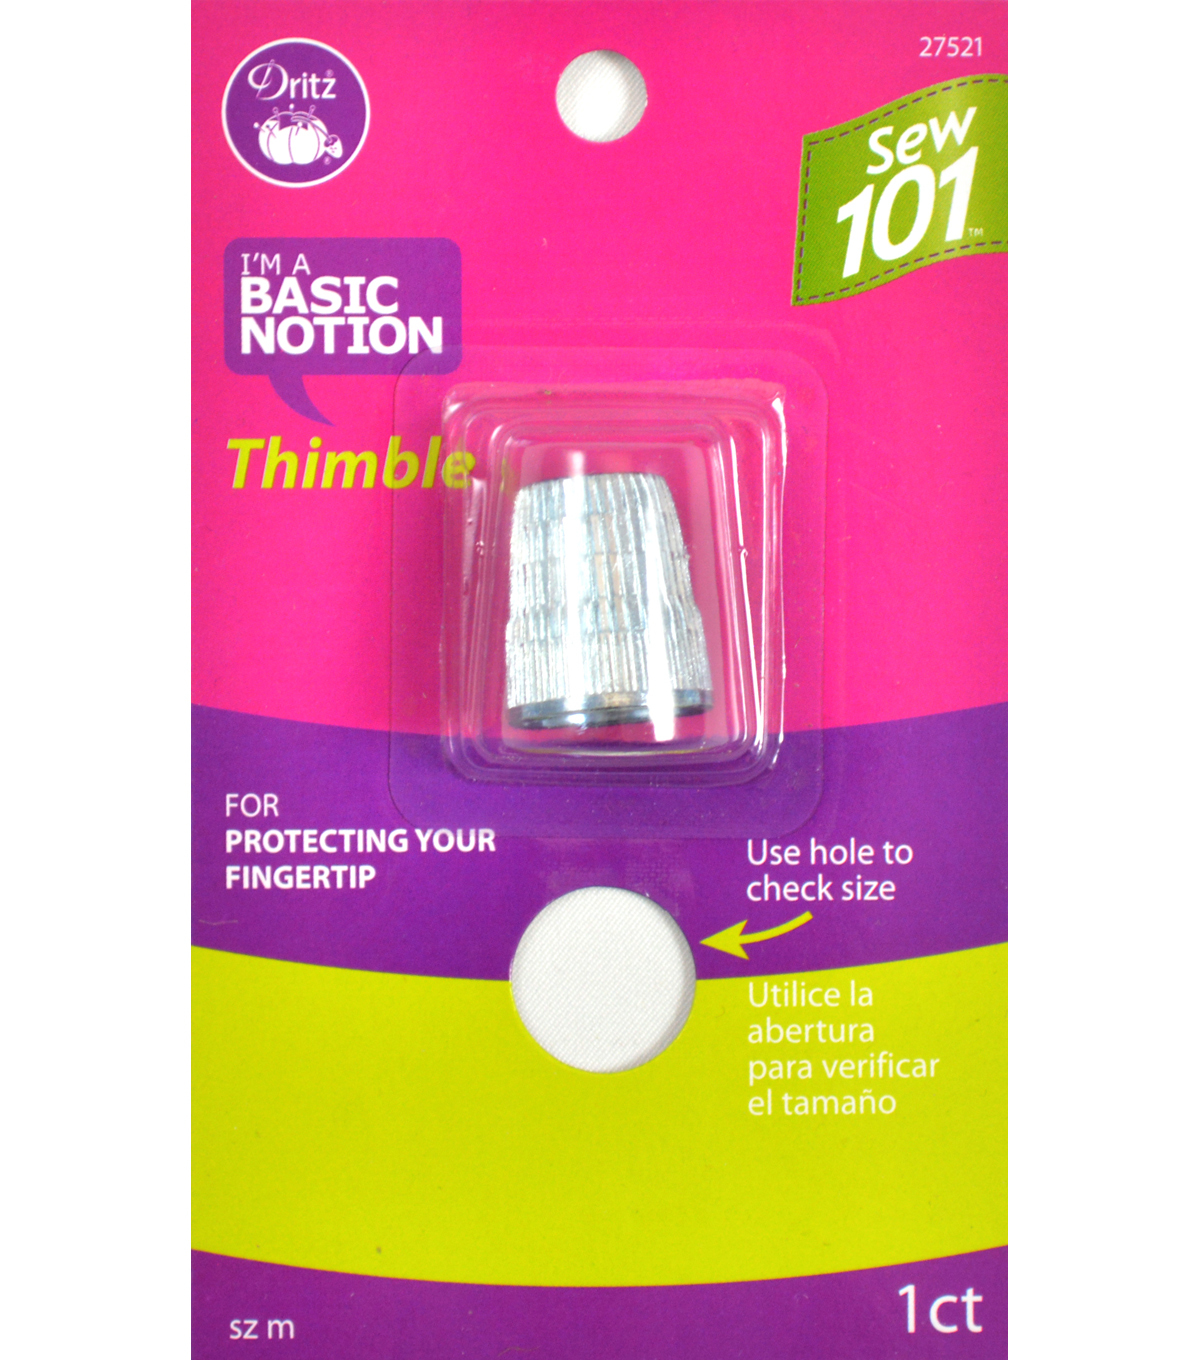 Dritz Sewing 101 Thimble Size Medium